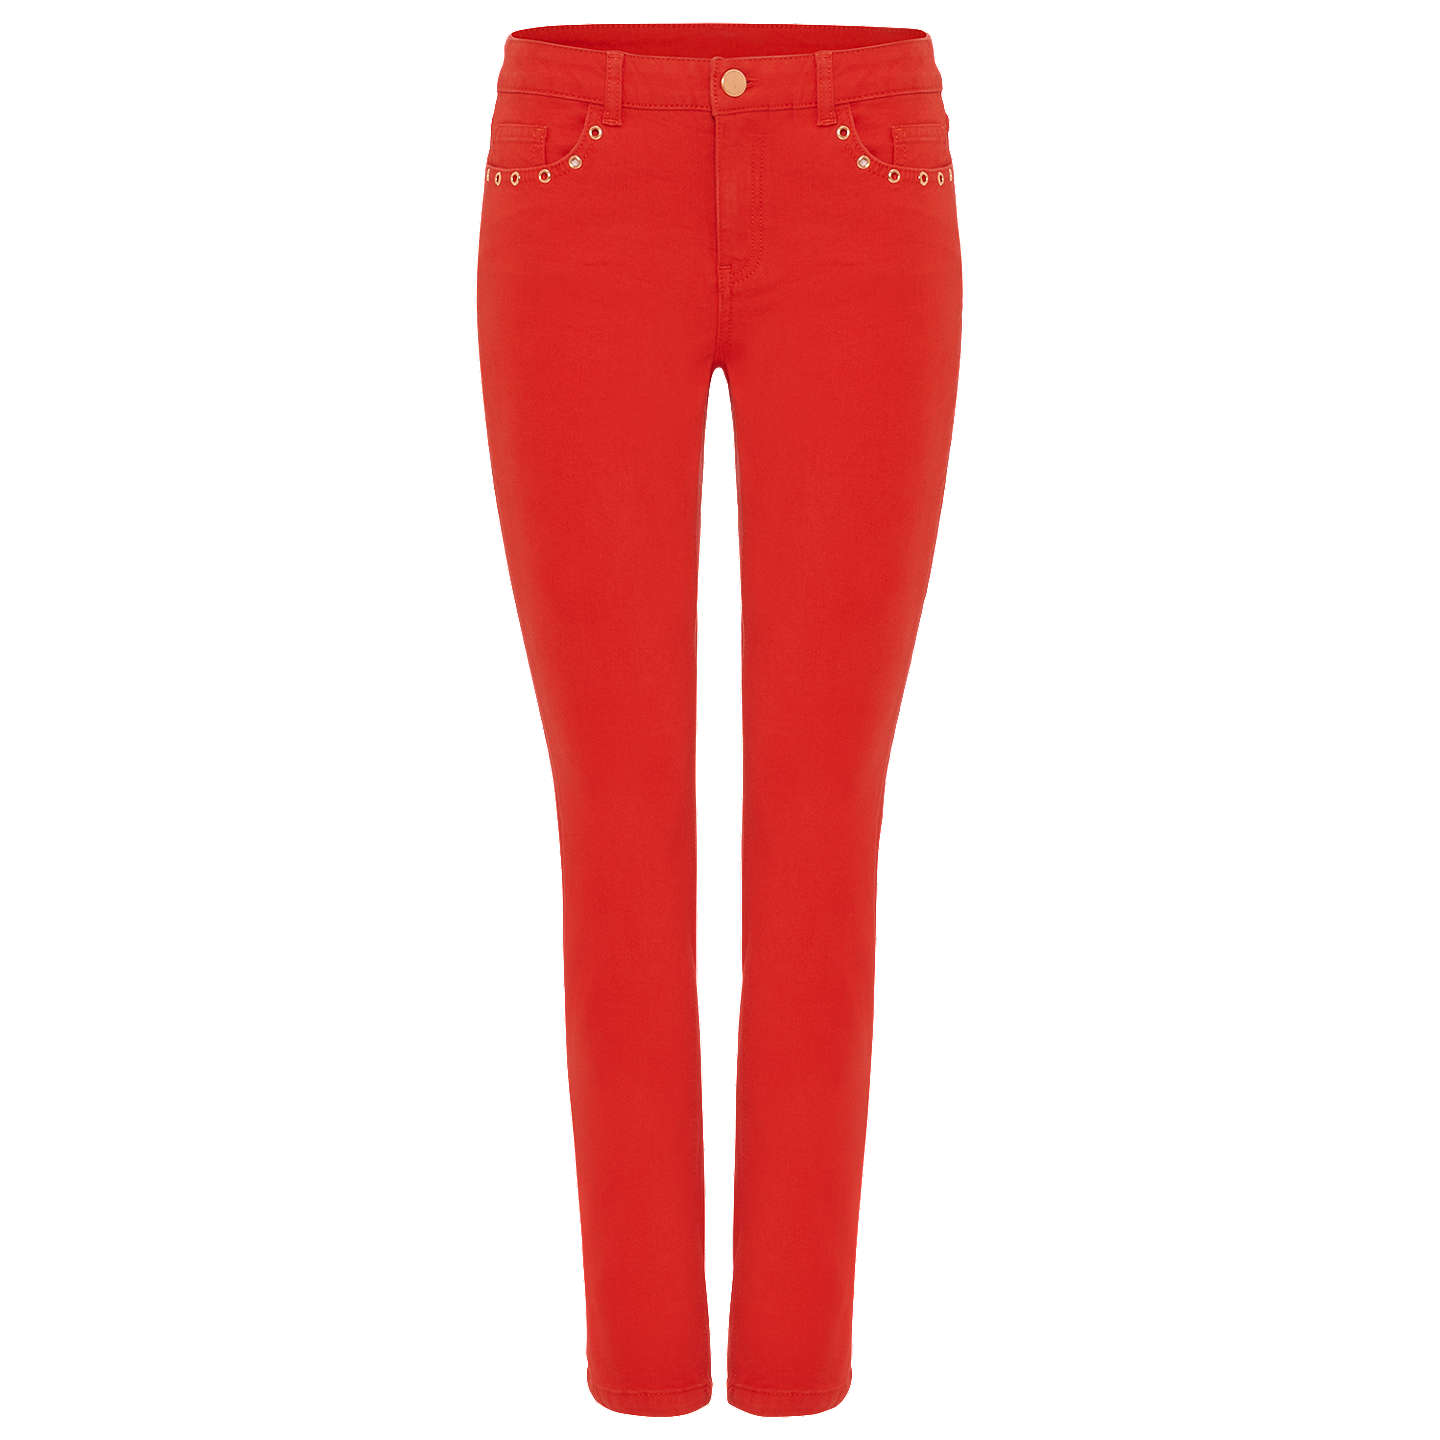 BuyPhase Eight Sasha Stud Jeans, Chilli Red, 8 Online at johnlewis.com